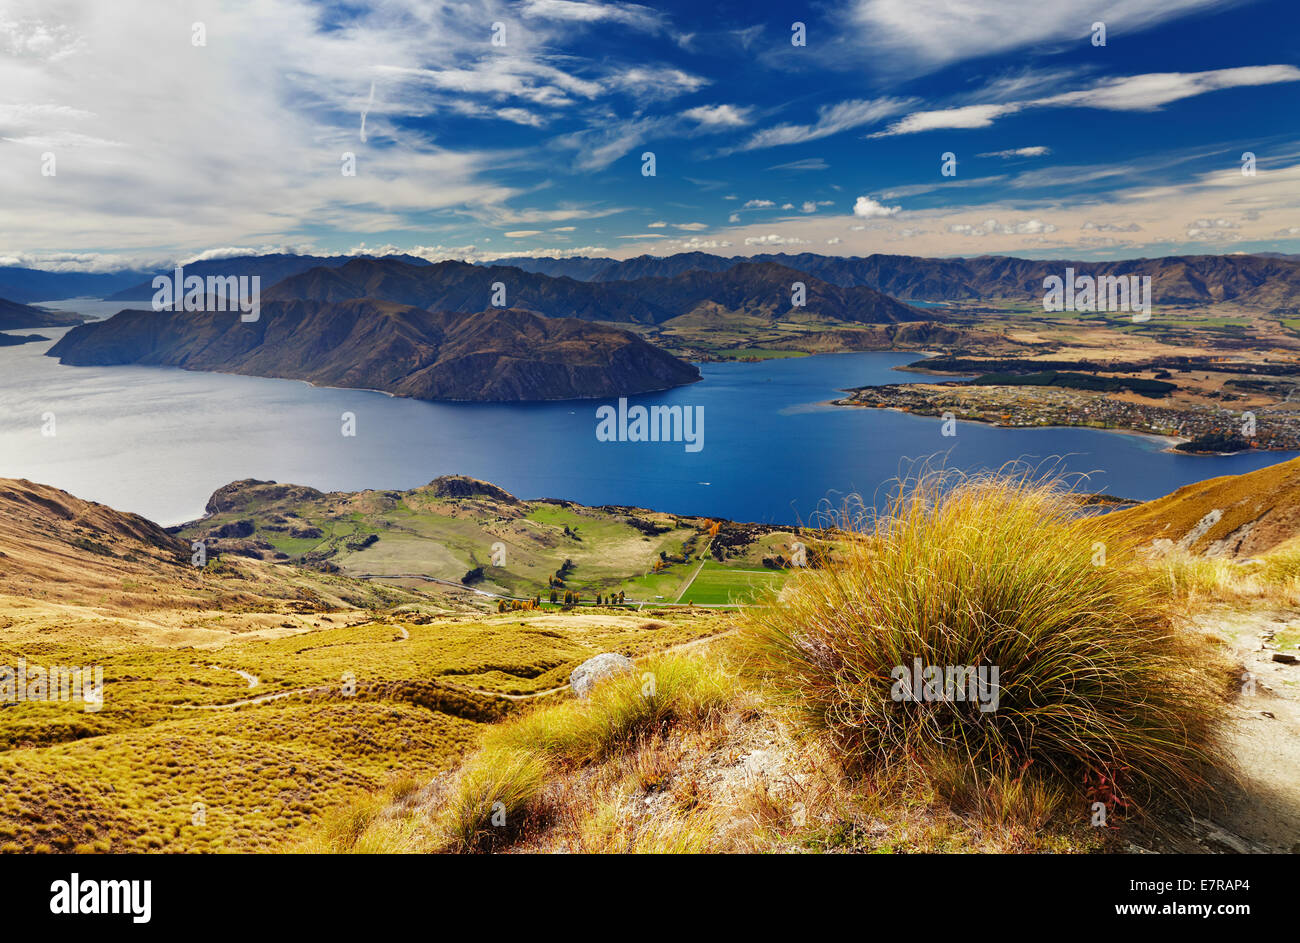 Lake Wanaka, view from mount Roys, New Zealand - Stock Image